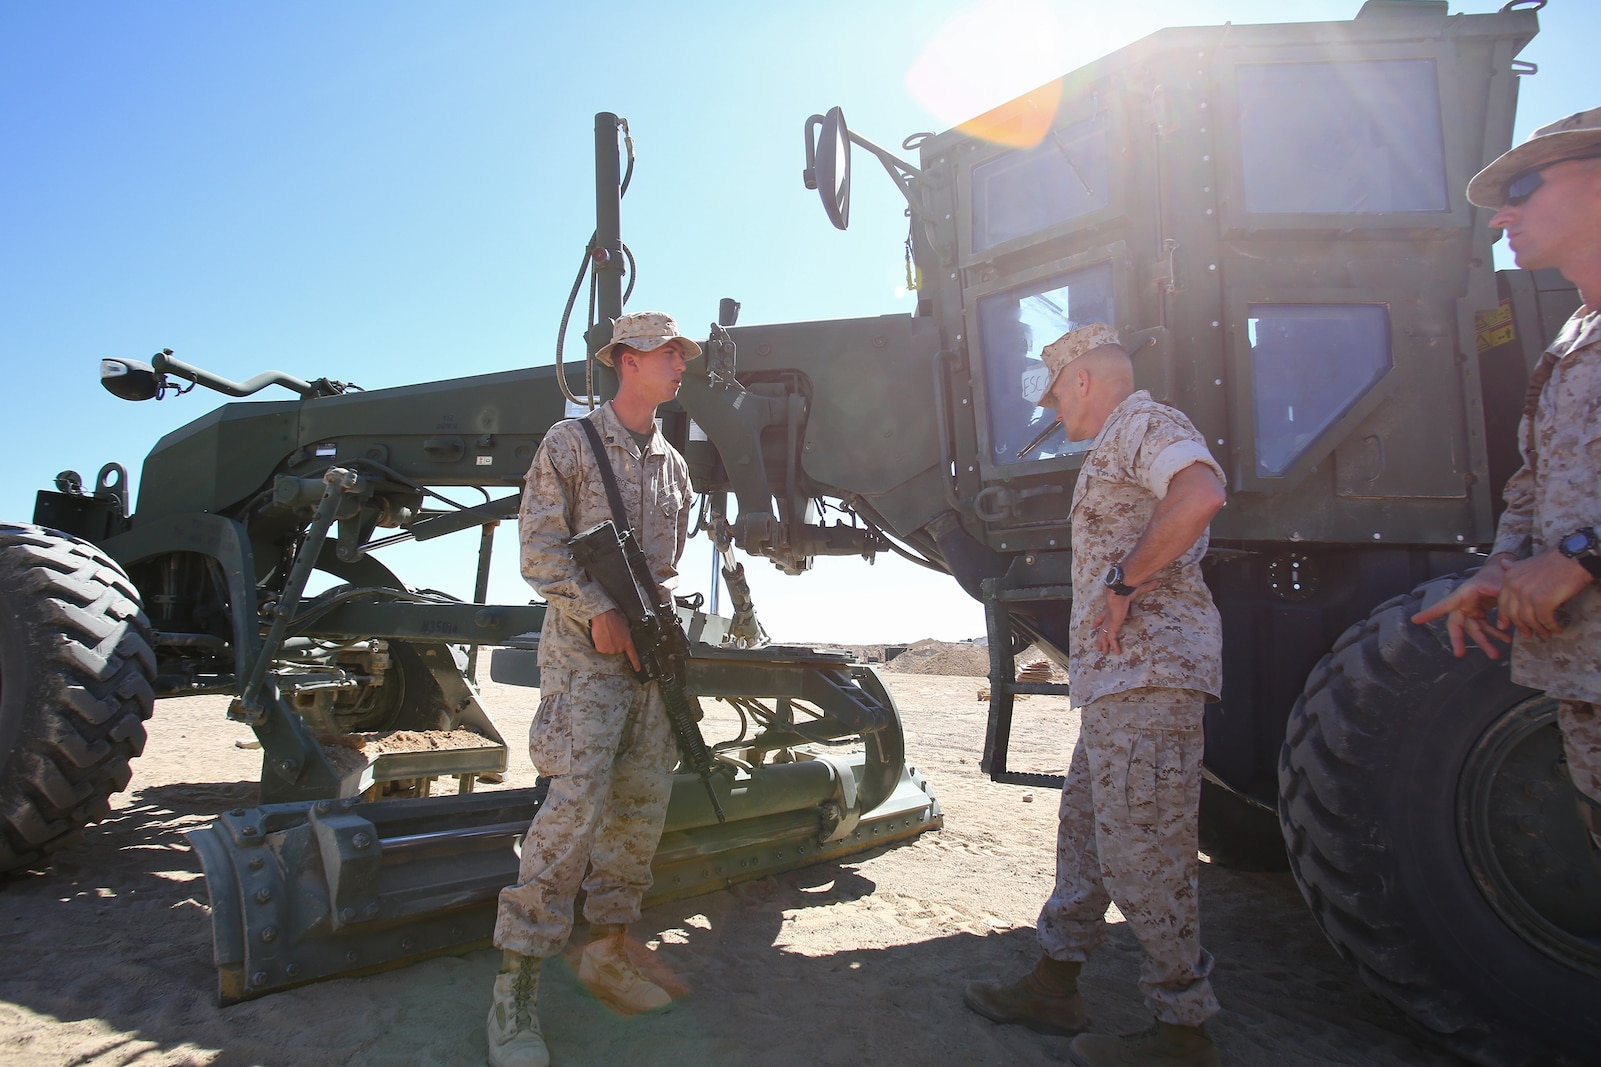 Brigadier Gen. Vincent A. Coglianese (right), commanding general, 1st Marine Logistics Group, talks with Cpl. Jacob R.  Pierce, heavy equipment operator, Combat Logistics Battalion 1, Combat Logistics Regiment 1, 1st MLG, when Pierce described the 120M military motor grader during Integrated Training Exercise 3-14 aboard Marine Corps Air Ground Combat Center Twenty-nine Palms, Calif., March 21, 2014. The month-long ITX prepares the battalion for its role, as the logistics combat element, in the final combat deployment of Operation Enduring Freedom. Pierce, 21, is from San  Antonio, Texas.